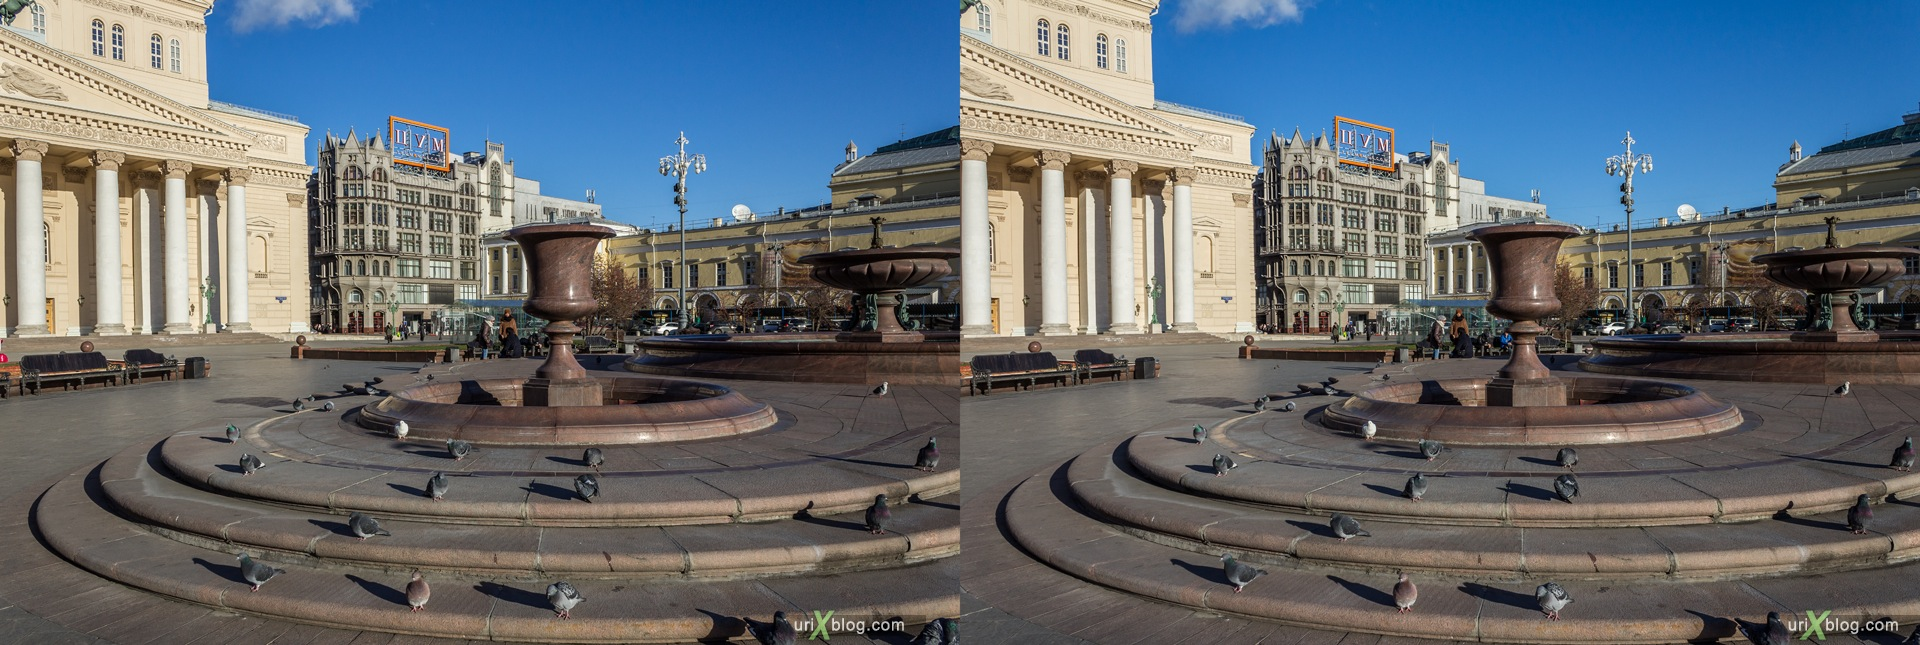 2013, Moscow, Russia, Teatralnaya square, Theatre square, fountain, TsUM, Bolshow theatre, Grand theatre, 3D, stereo pair, cross-eyed, crossview, cross view stereo pair, stereoscopic